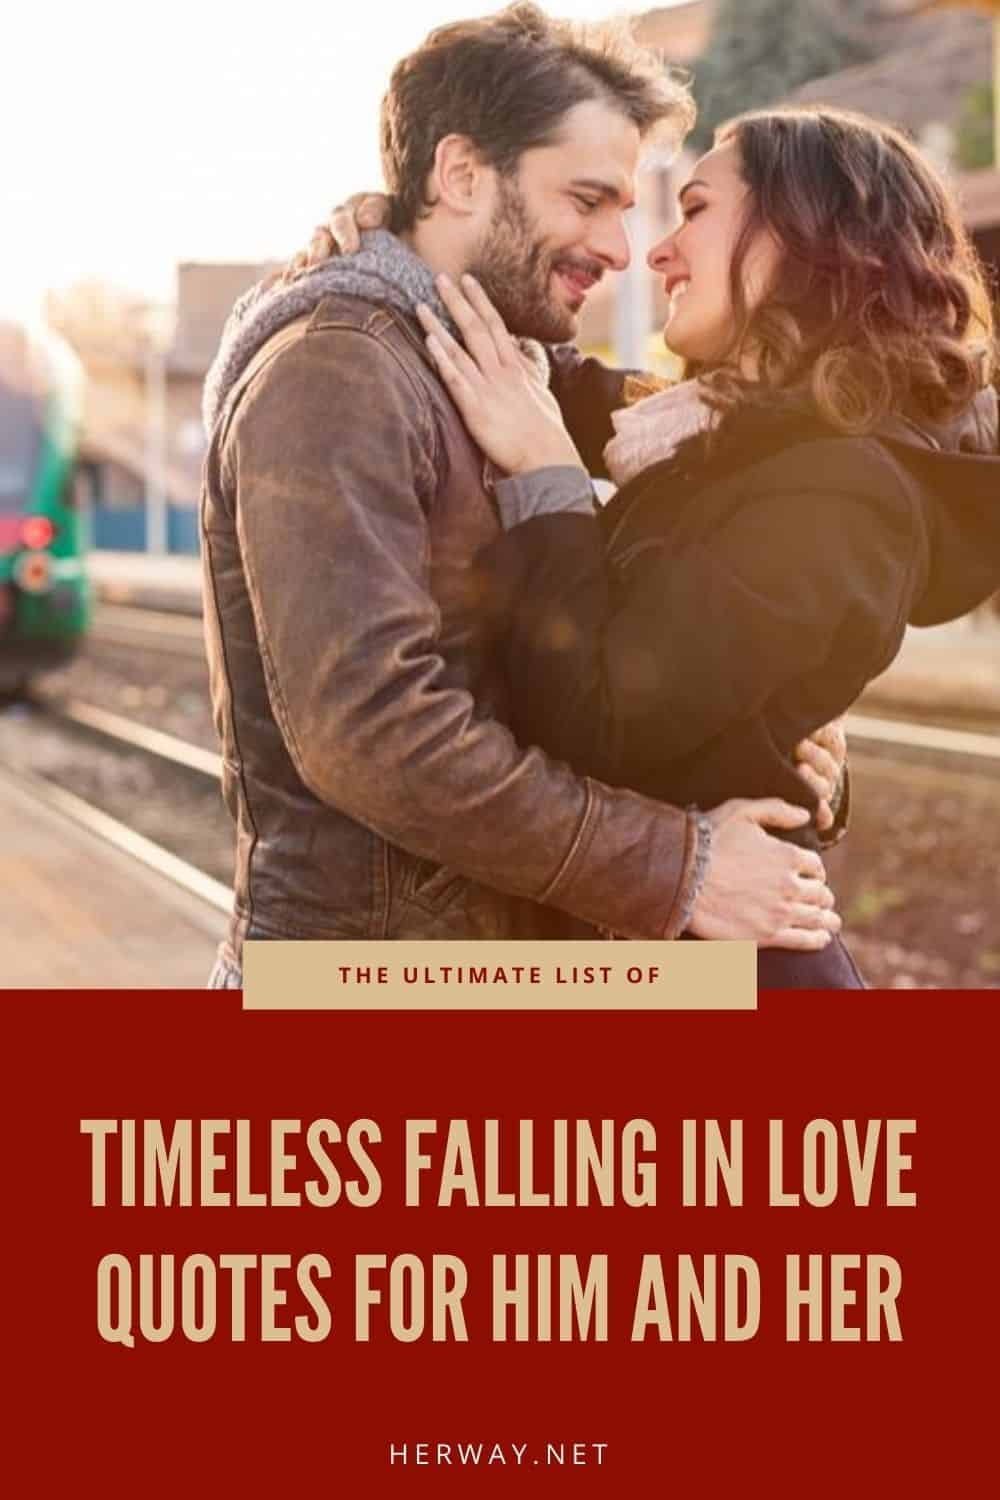 The Ultimate List Of Timeless Falling In Love Quotes For Him And Her